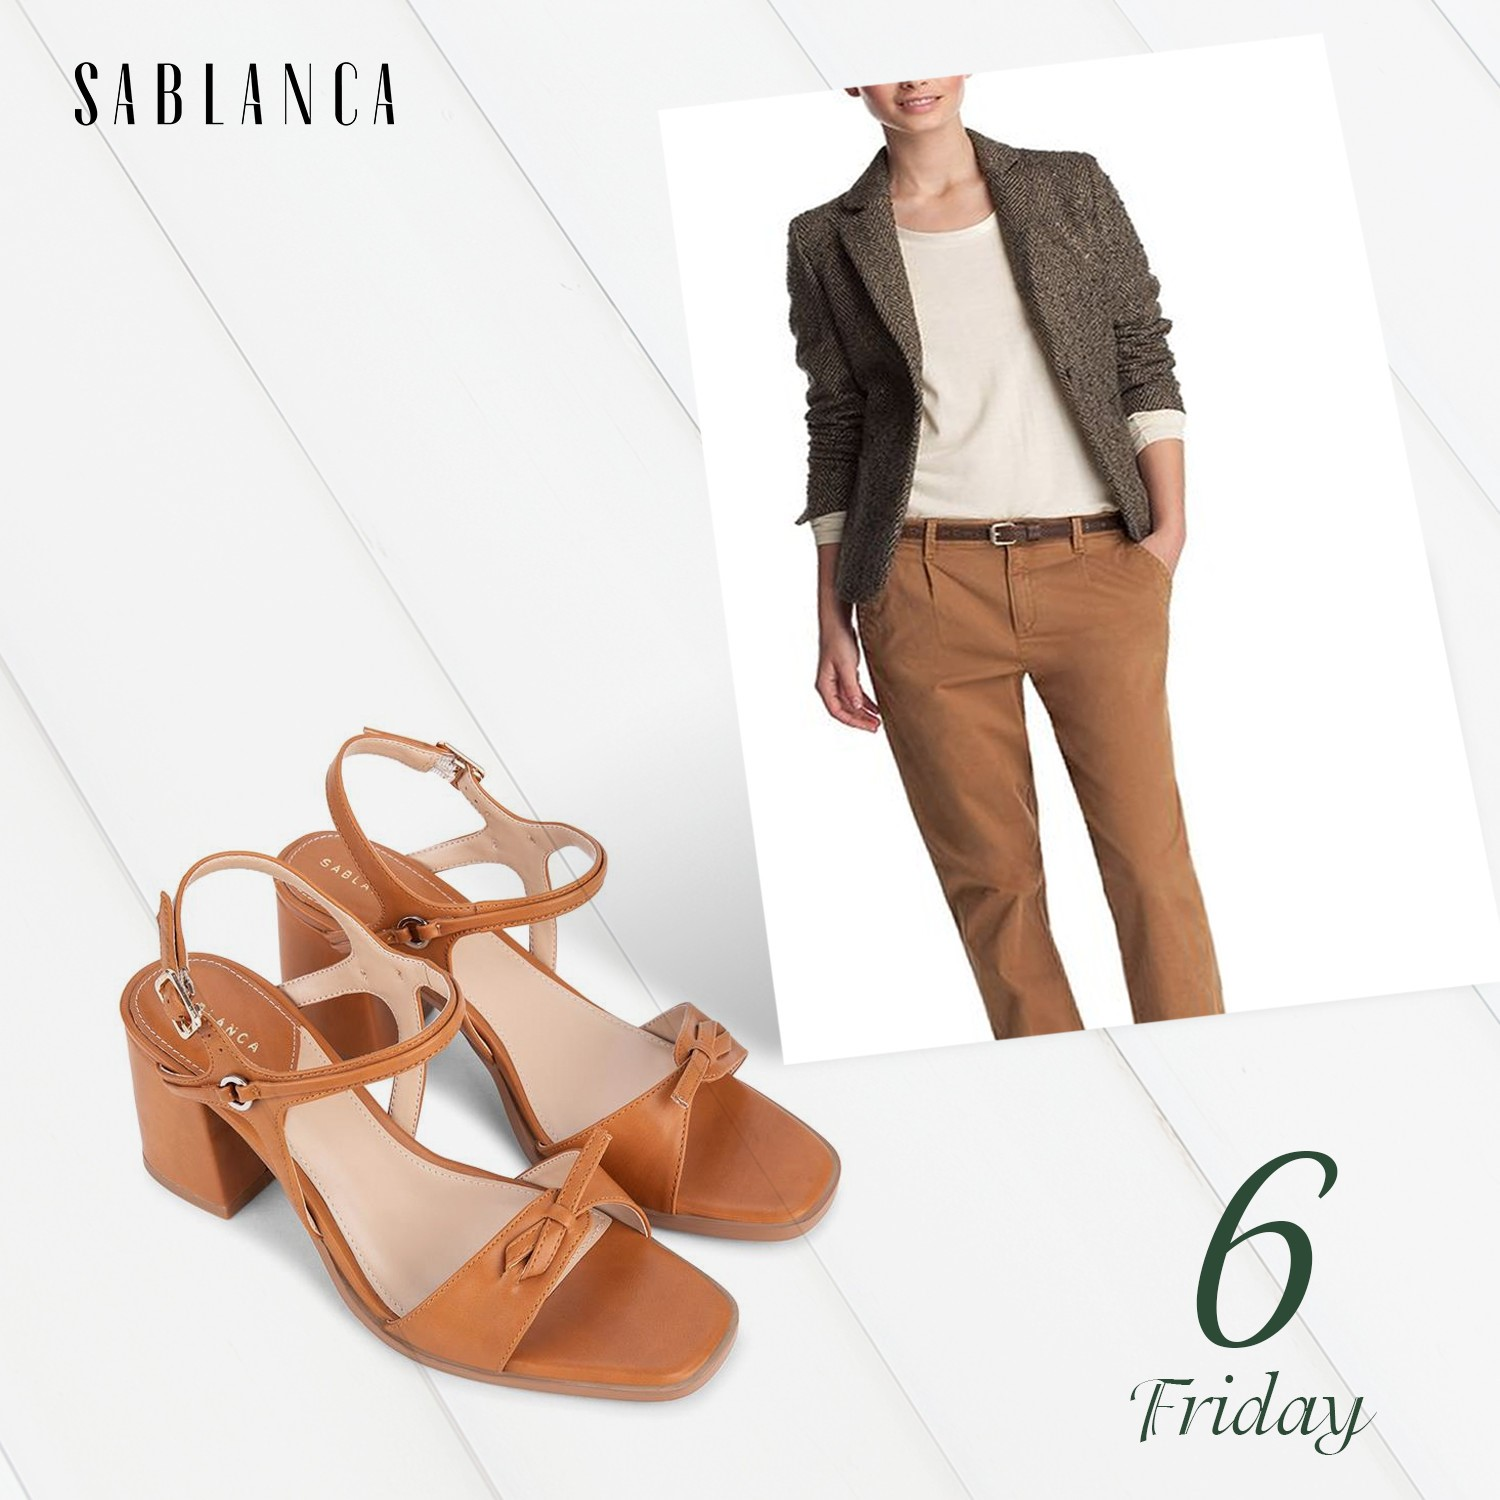 5-Outfit-ideas